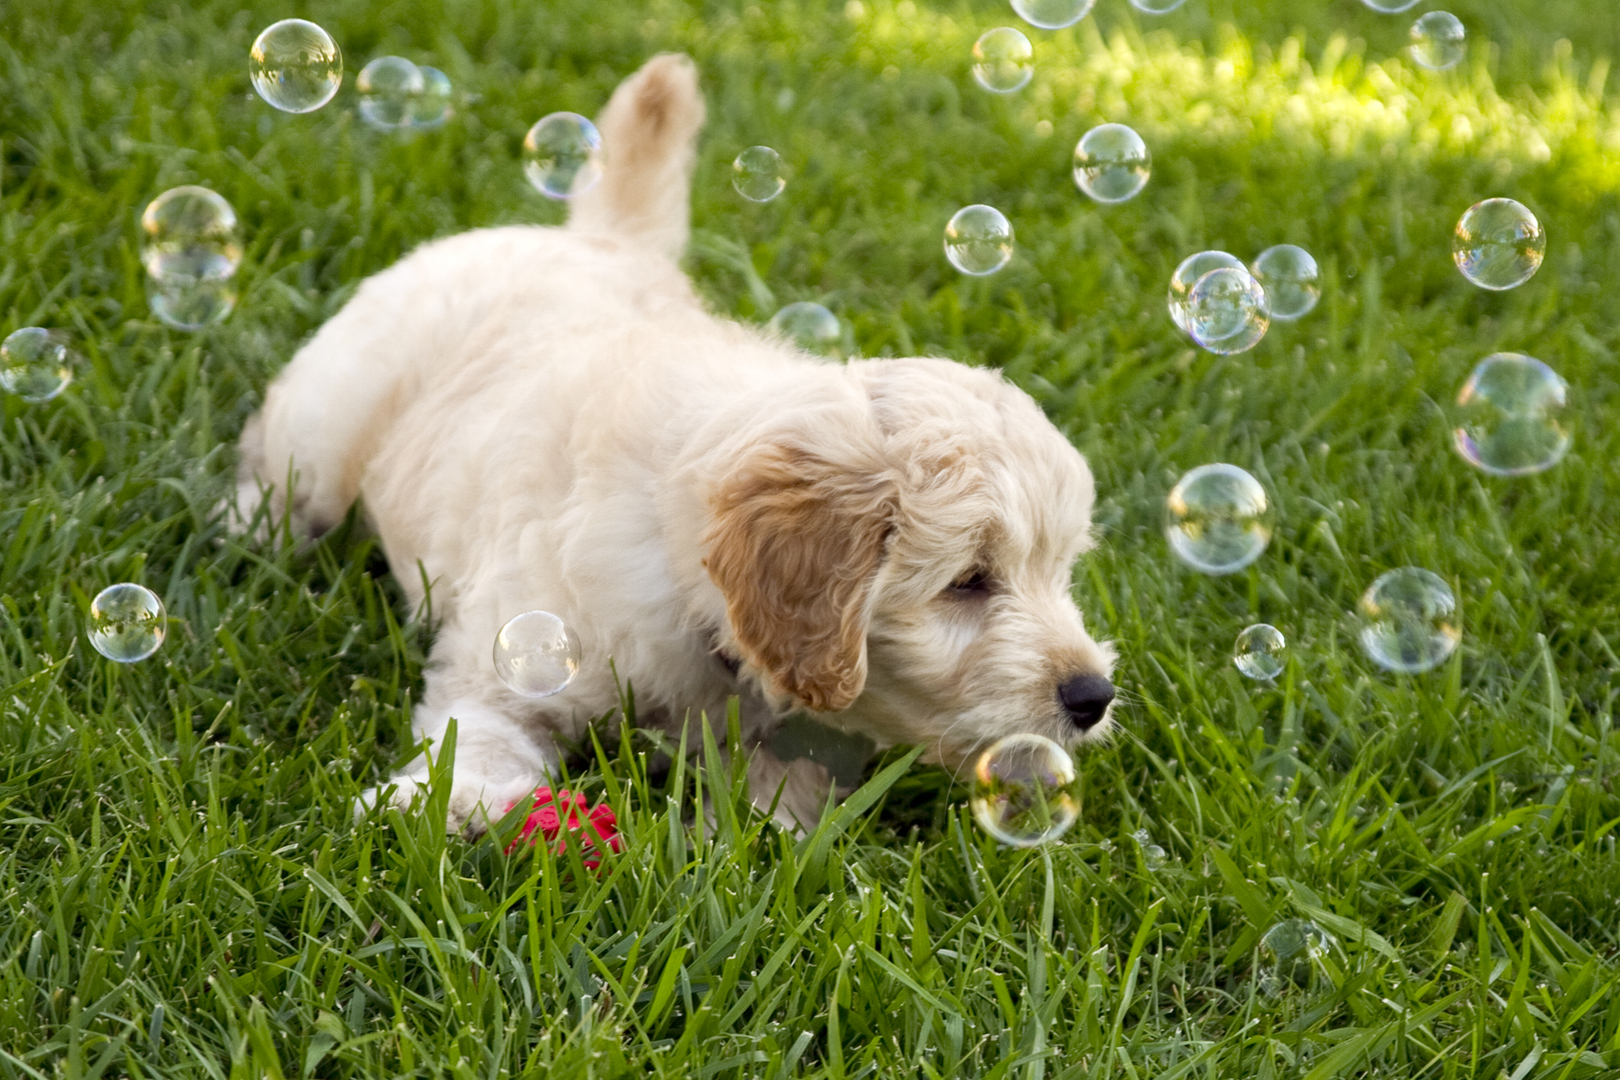 Beth's Little Treasures - Goldendoodle Puppies, Puppy Find, Puppy